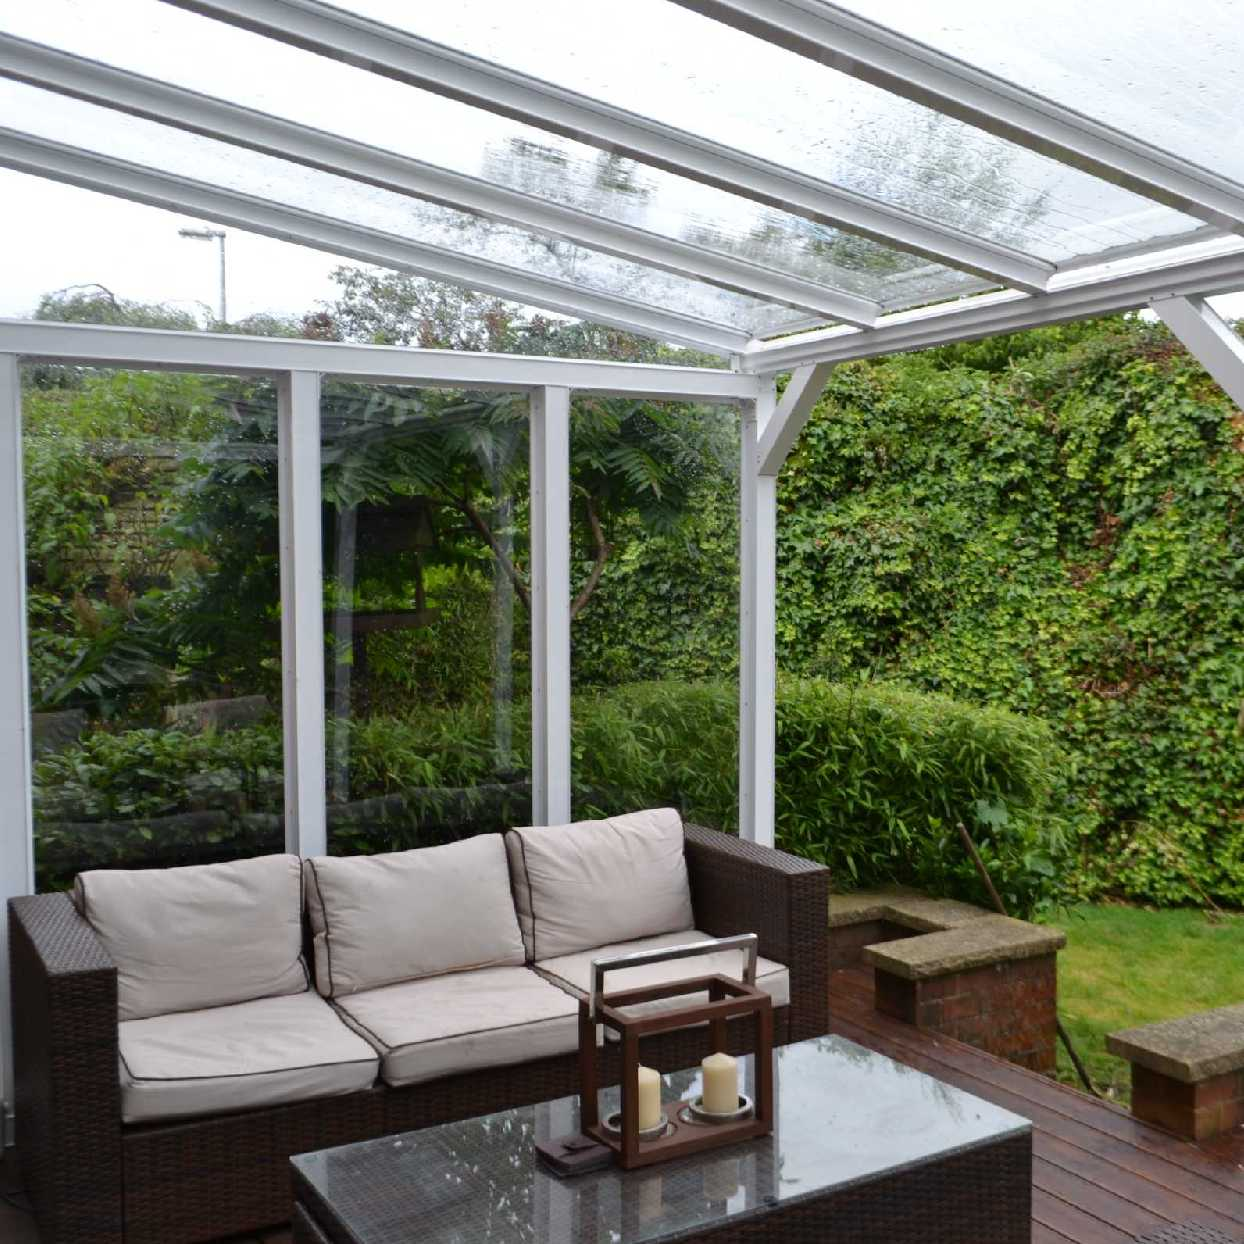 Omega Smart White Lean-To Canopy UNGLAZED for 6mm Glazing - 4.2m (W) x 2.5m (P), (3) Supporting Posts